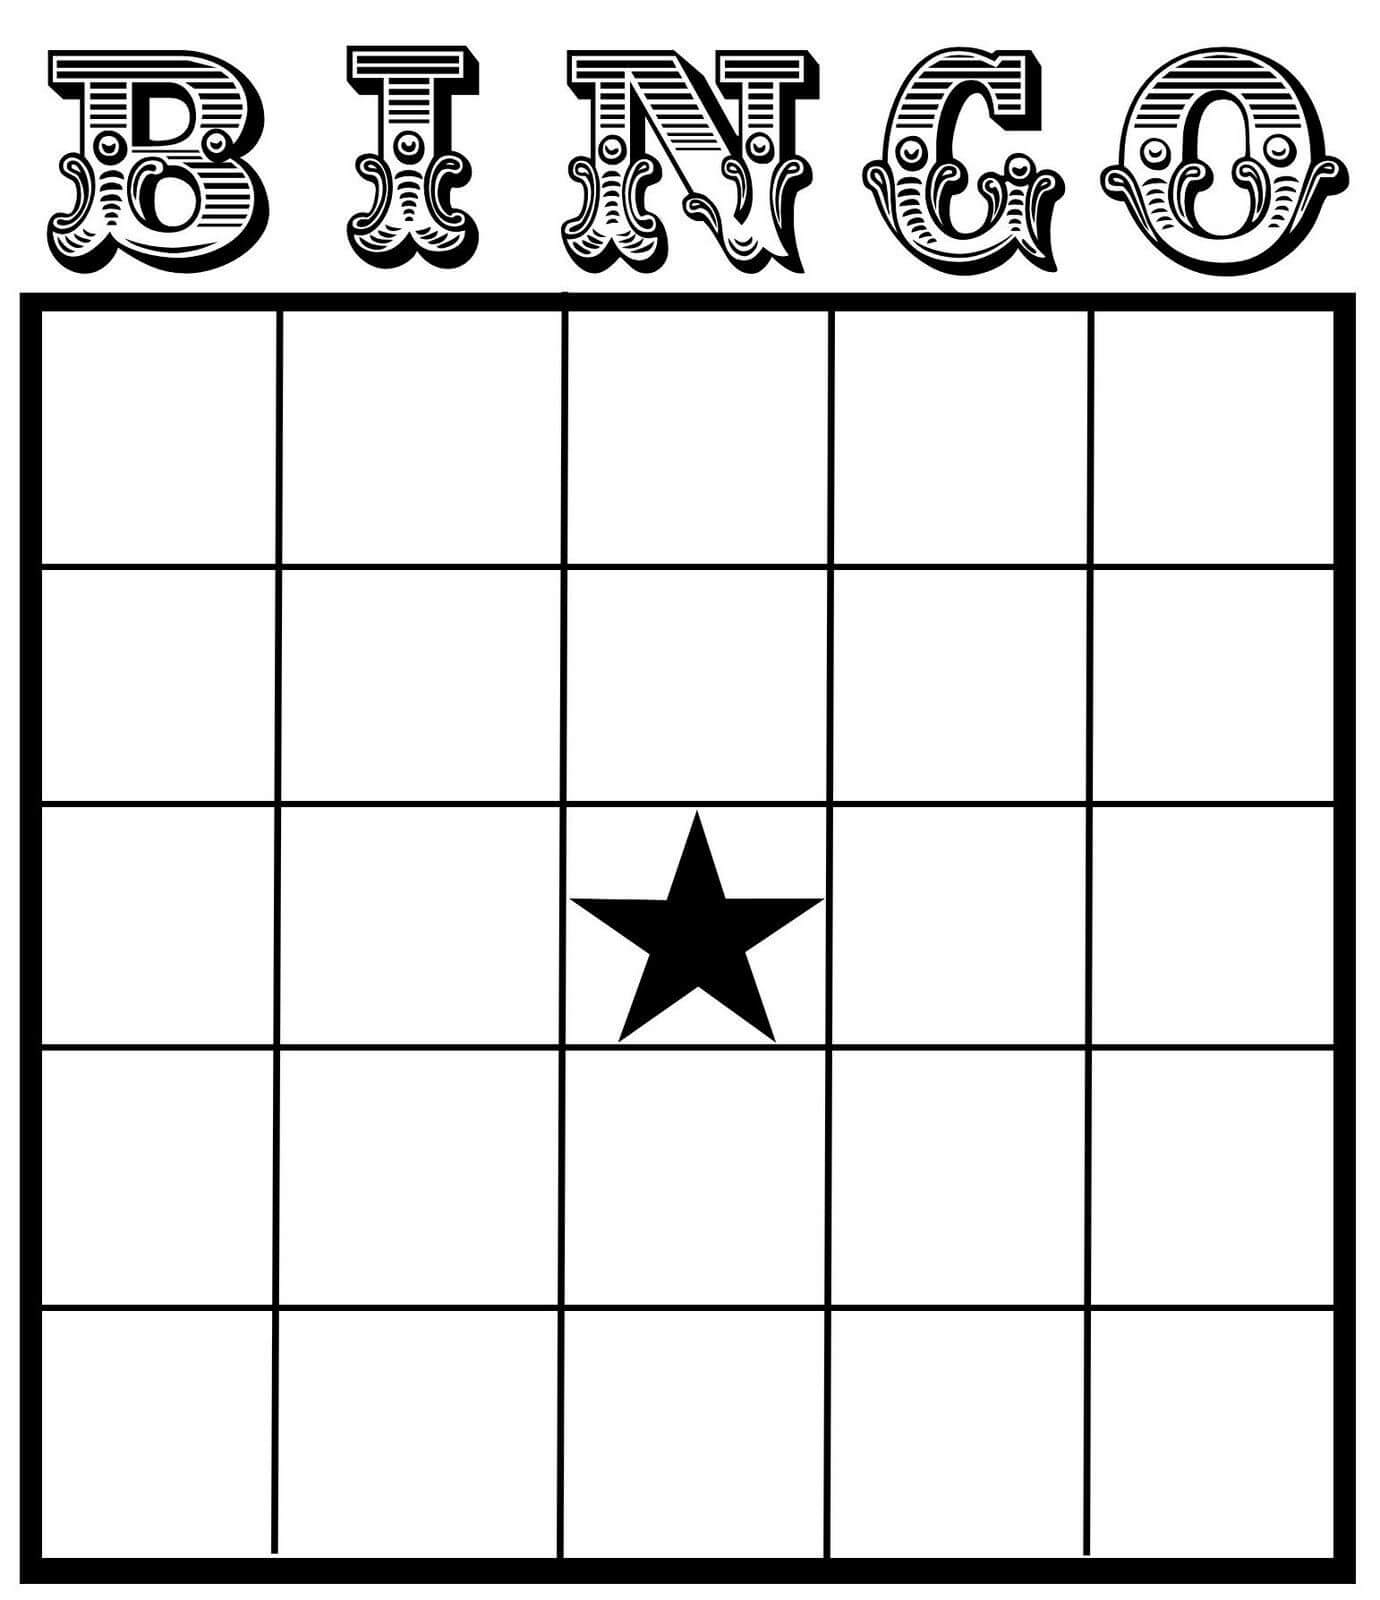 002 Blank Bingo Card Template Ideas Stirring Microsoft Excel For Blank Bingo Card Template Microsoft Word